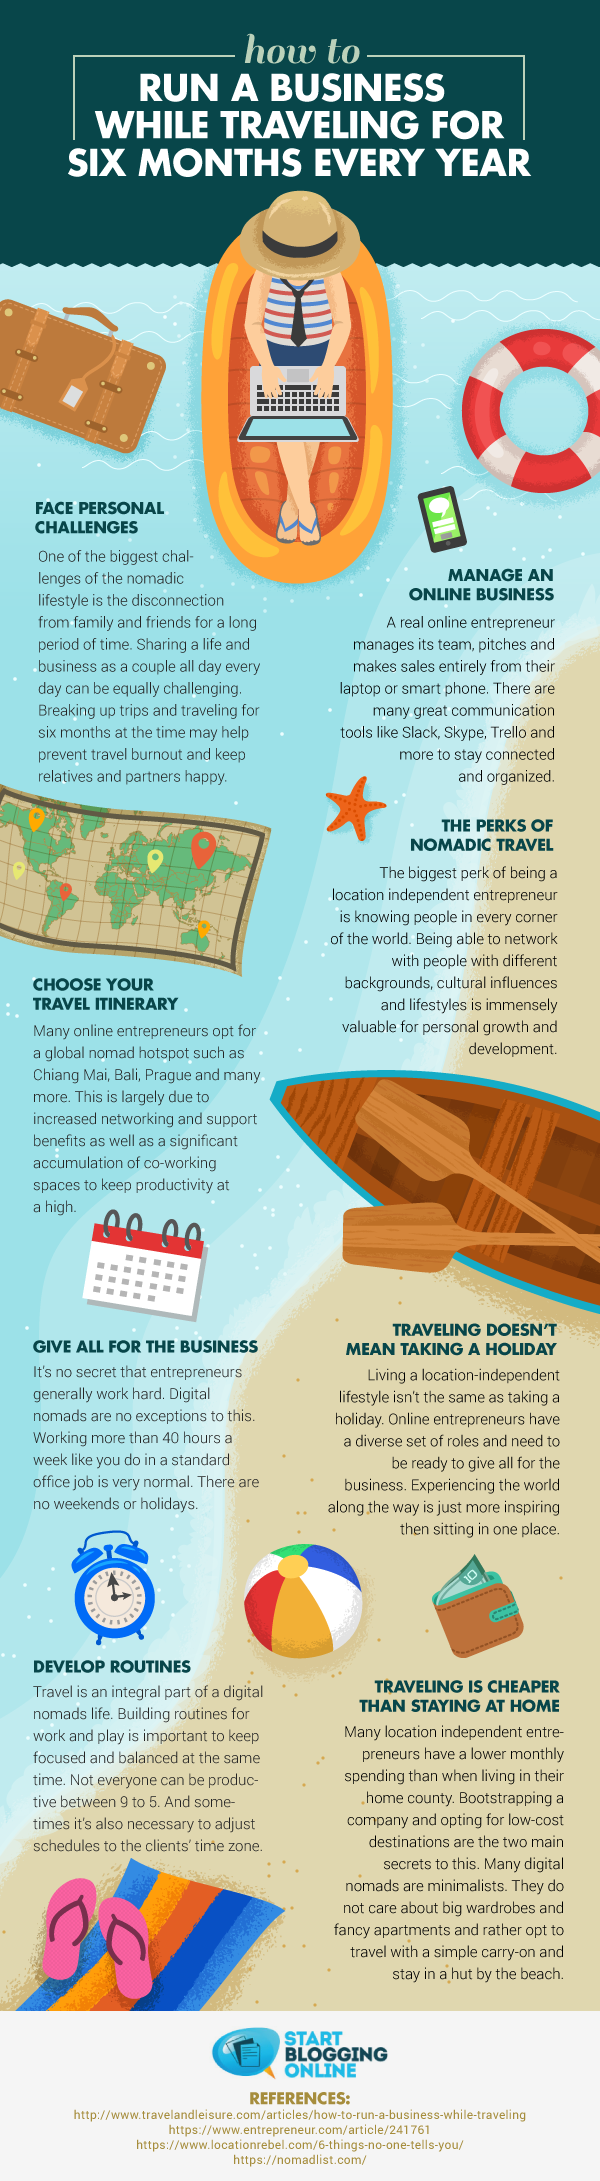 how-to-run-a-business-while-traveling